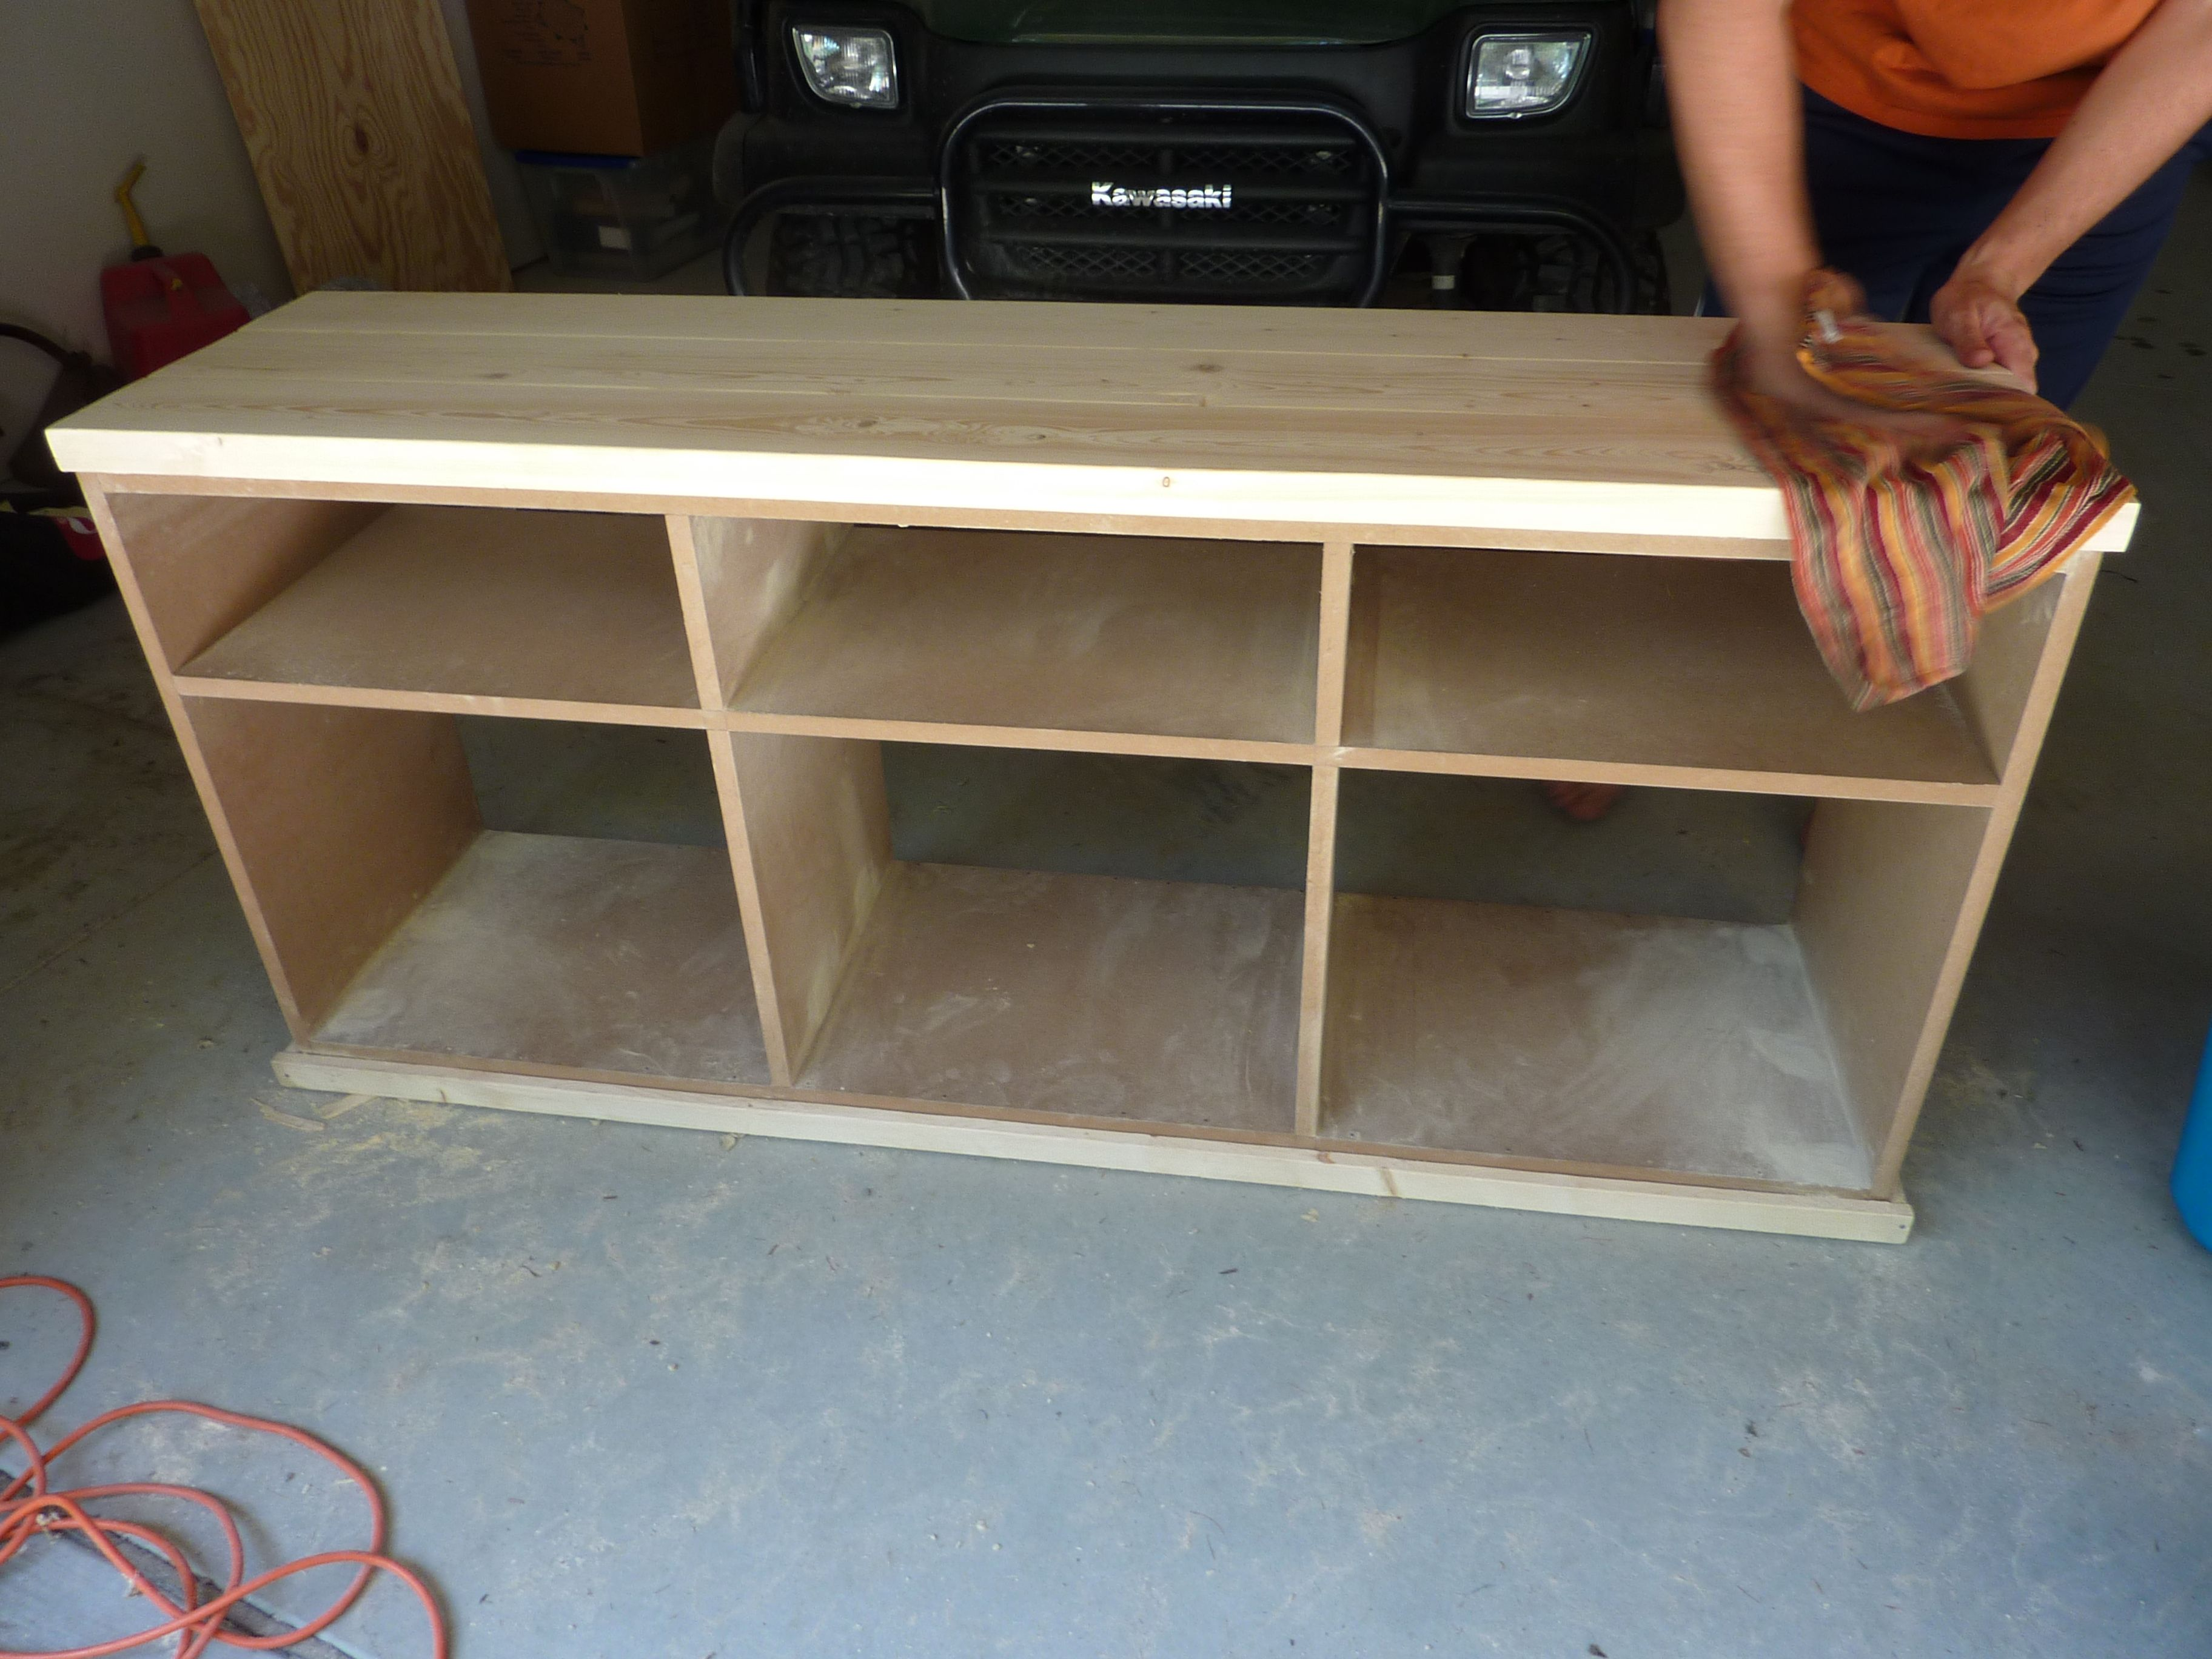 Build a tv stand plans TV Stands and Entertainment Centers free woodworking plans and projects instructions to build for your home Also general woodworking plans for your home Organize all your video gear with this simple DIY TV stand It s a perfect DIY project easy building techniques reasonable cost complete in one weekend and Jan 1 2014 Come See how to make a simple rustic DIY TV Stand this is a beautiful set i plan on building 2 of these i larger for the TV and one smaller This TV stand…